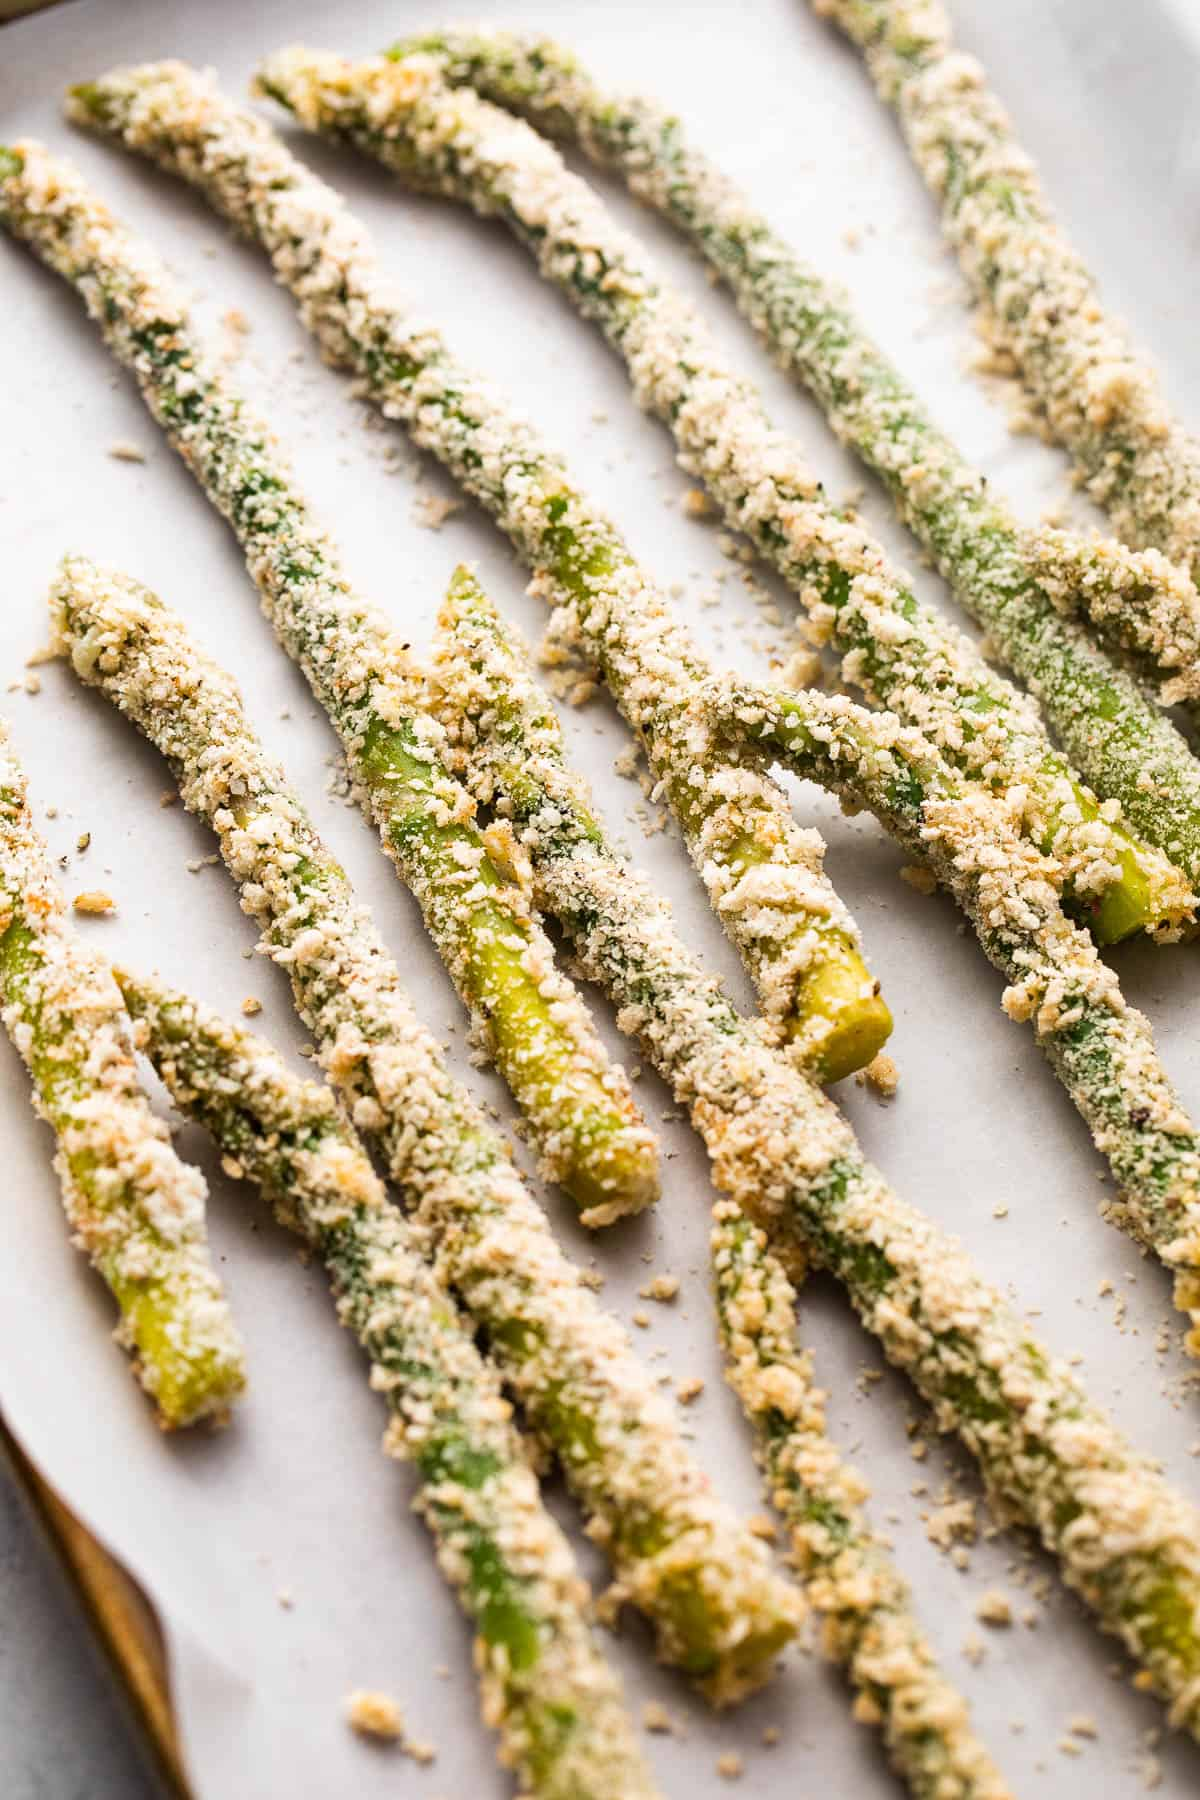 arranged fresh asparagus spears coated with parmesan panko crumbs